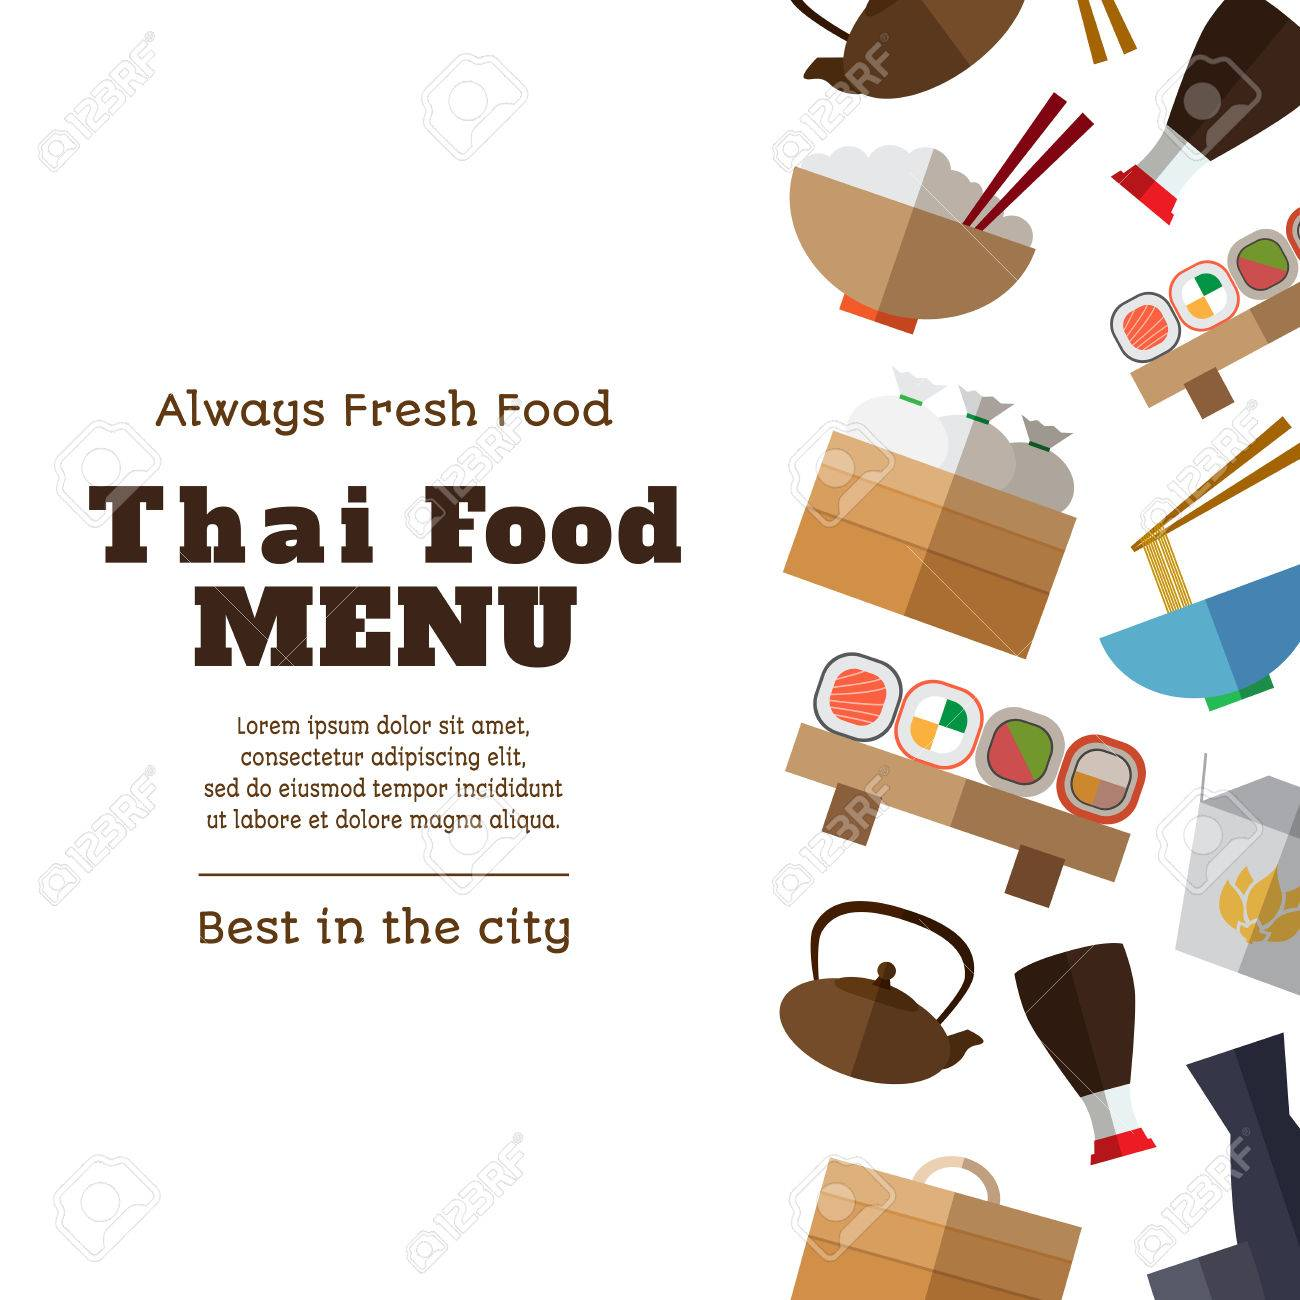 Thai Food Menu Template With Simple Flat Asian Food And Equipment